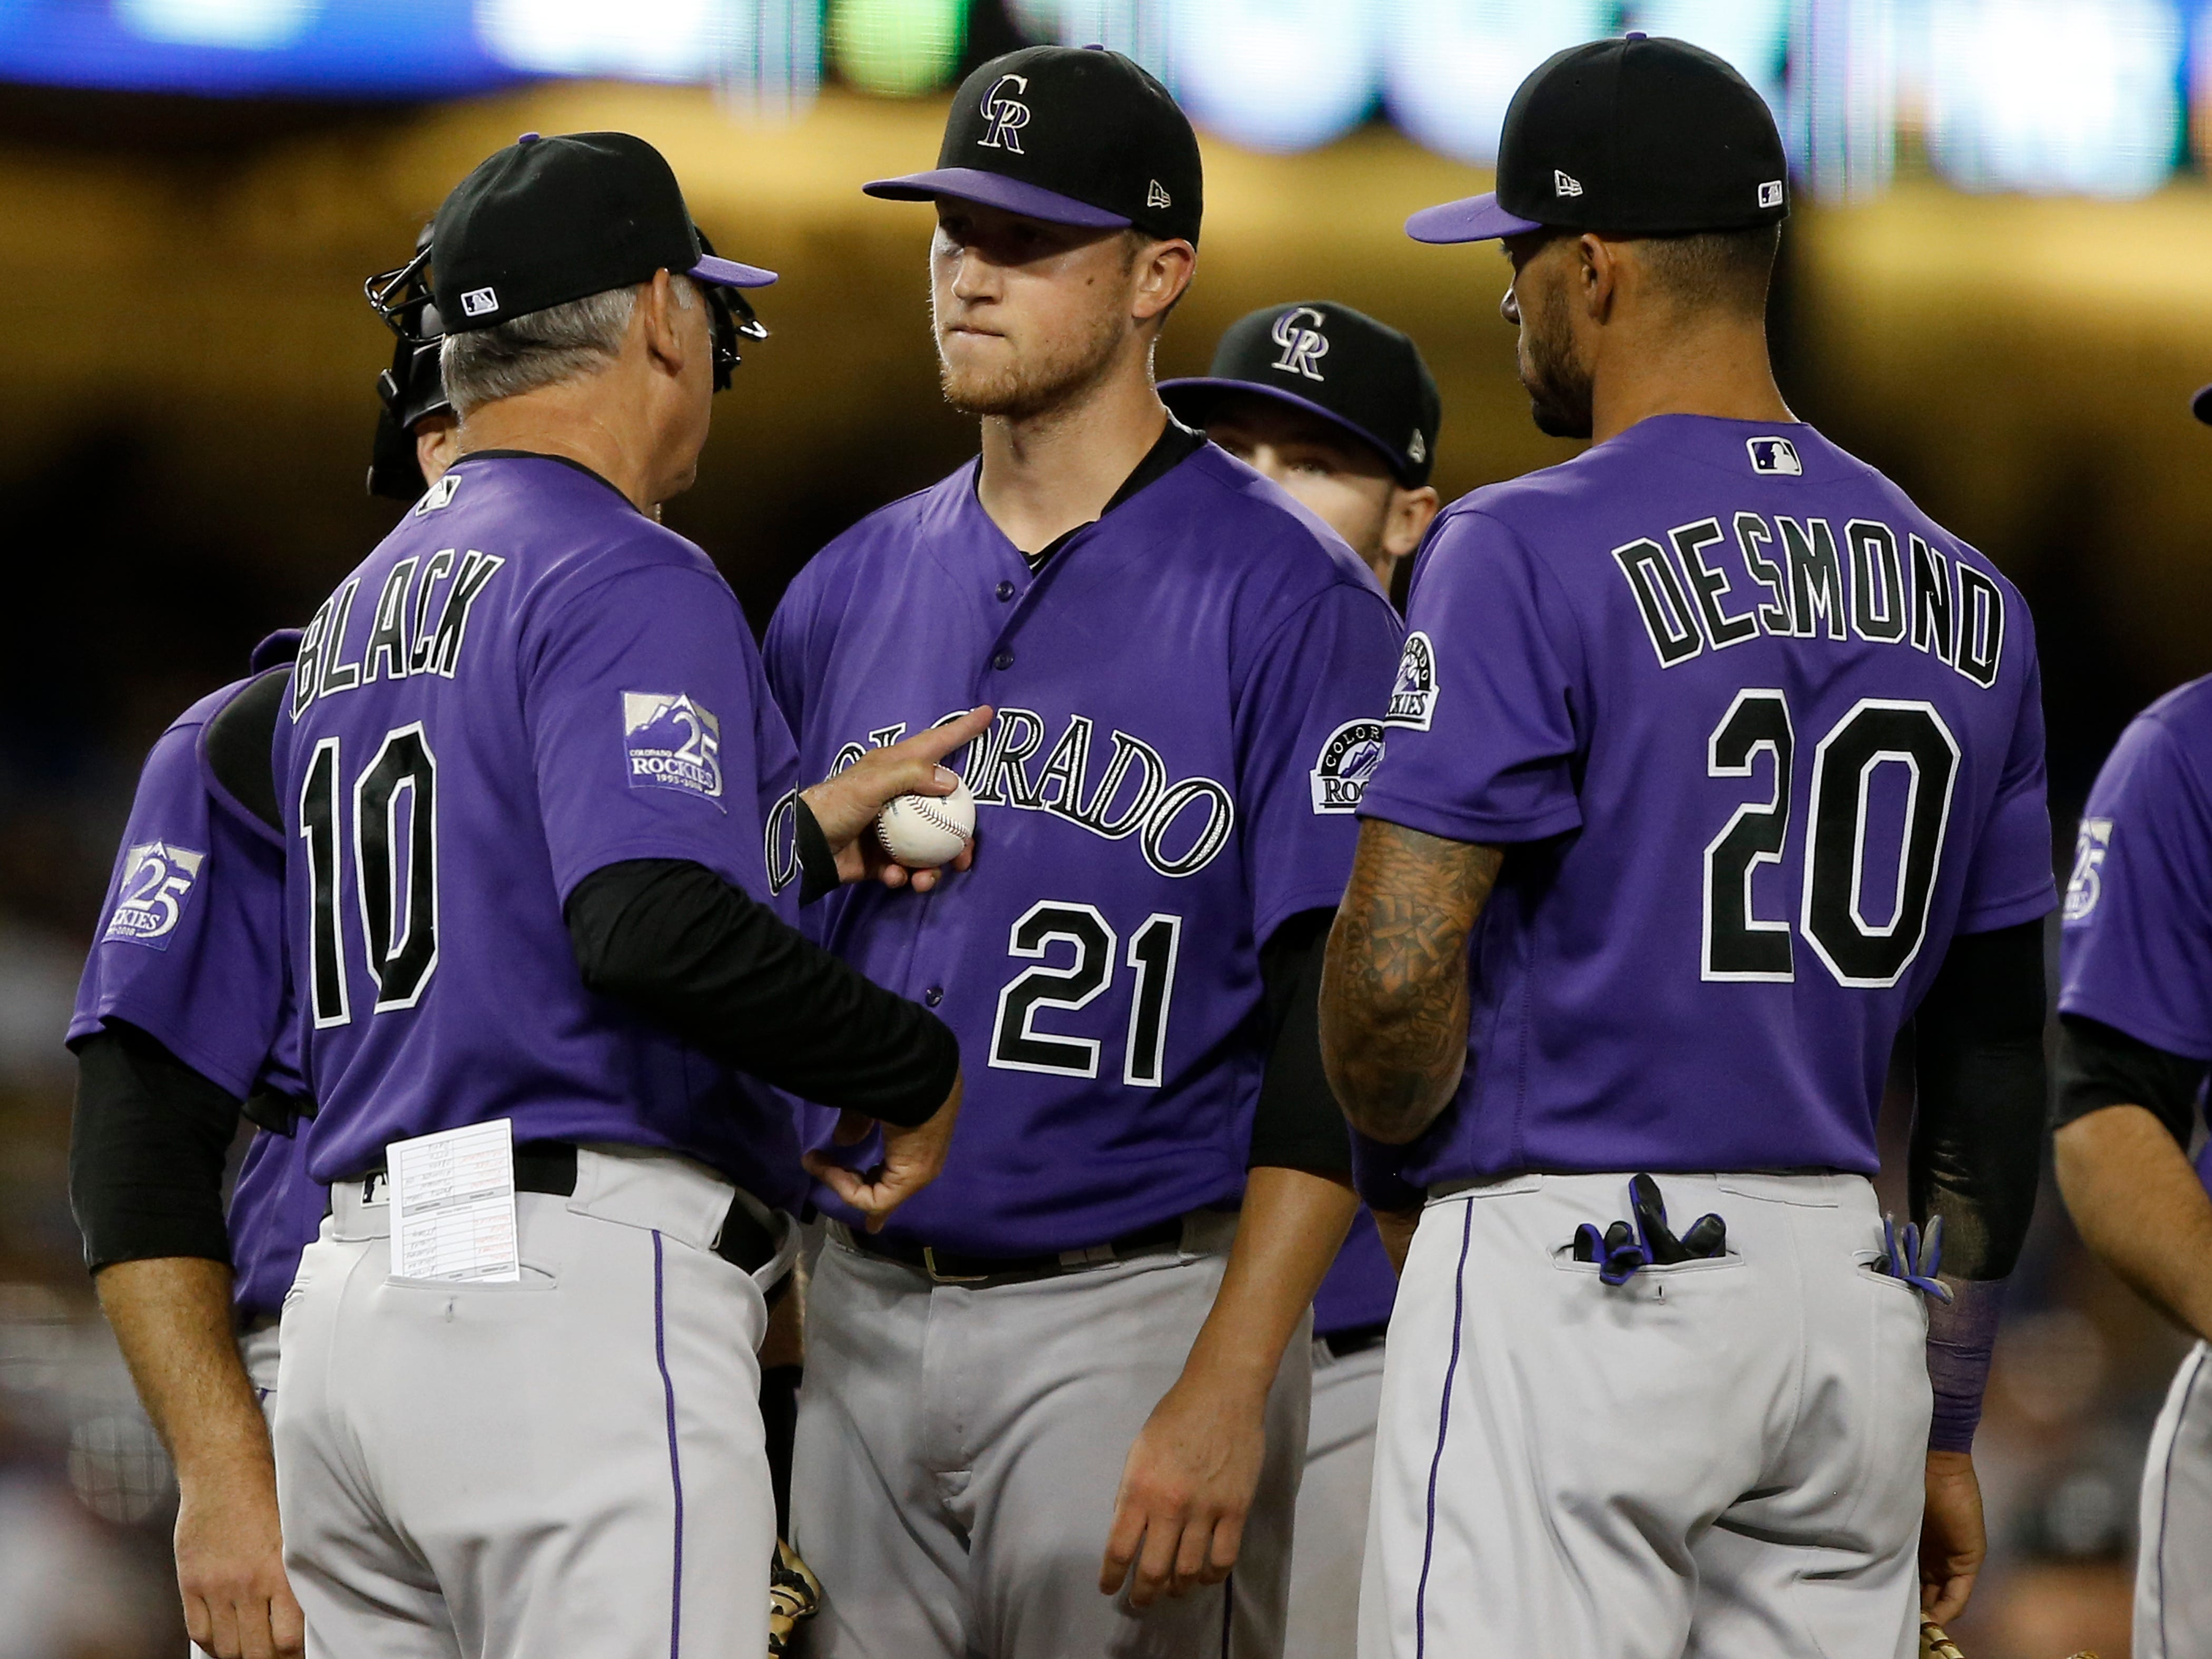 Colorado Rockies manager Bud Black, left, talks to starting pitcher Kyle Freeland (21), while switching pitchers, with first baseman Ian Desmond (20) looking on during the seventh inning of a baseball game against the Los Angeles Dodgers in Los Angeles, Tuesday, Sept. 18, 2018. (AP Photo/Alex Gallardo)